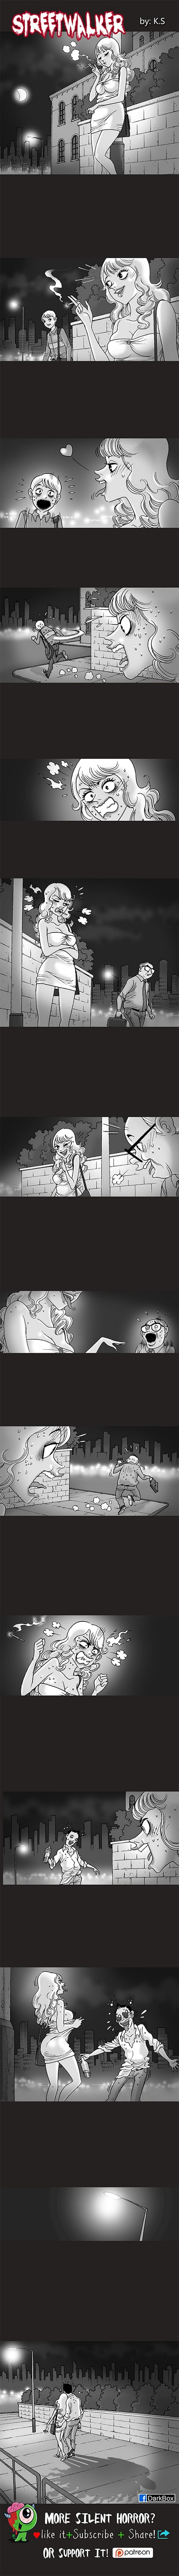 Silent Horror chap 73: Gái giang hồ